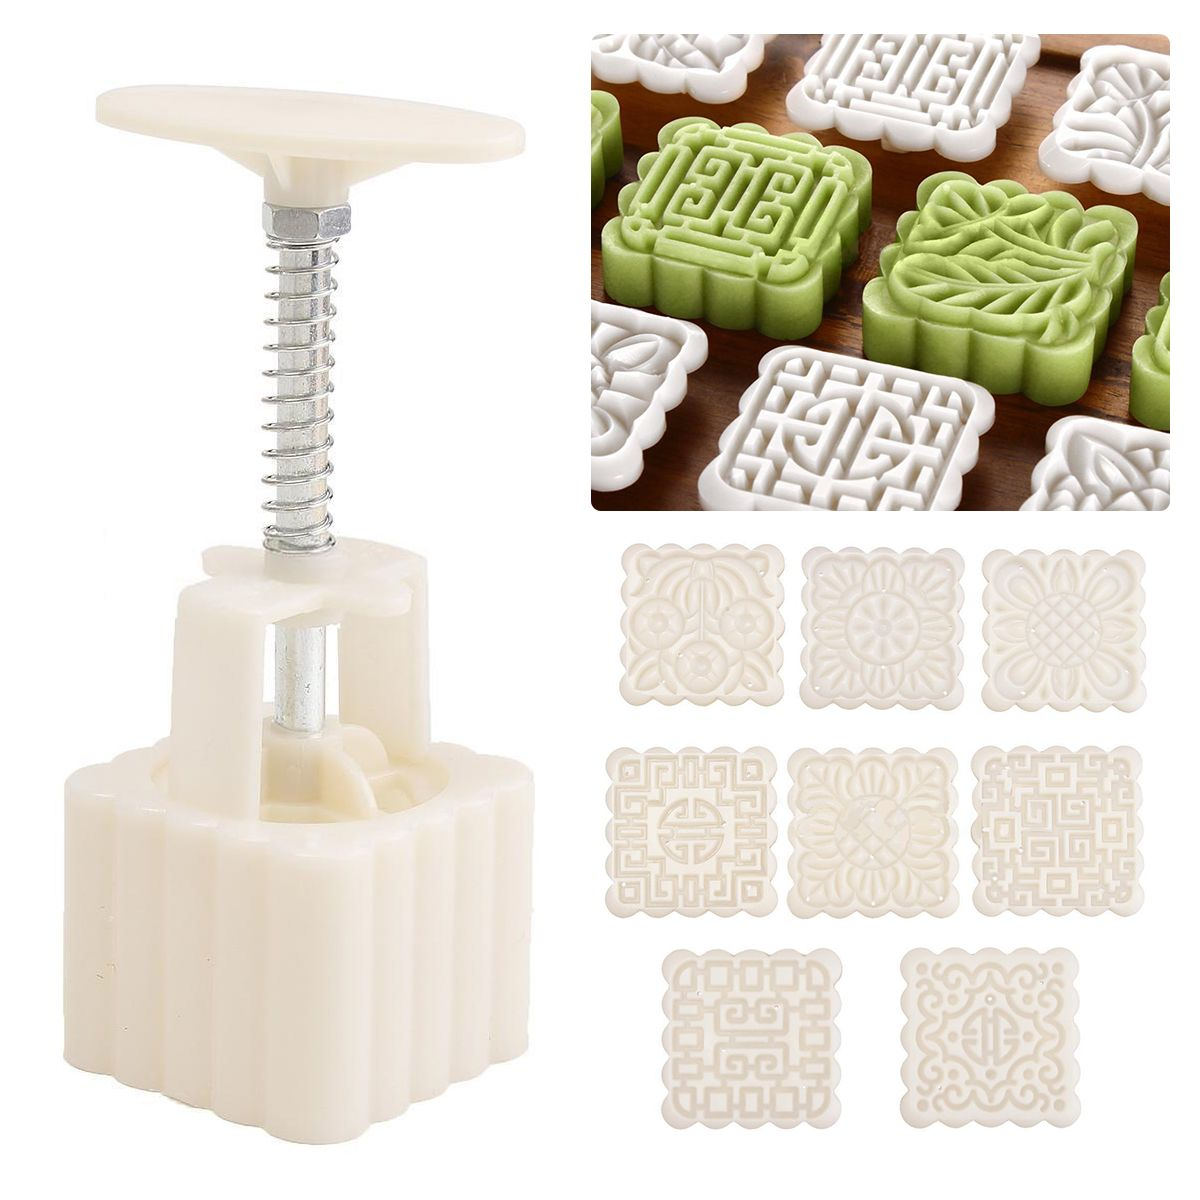 JX-LCLYL Square Baking Mooncake DIY Mold Pastry Biscuit Cake Mould Gadget With 8 Stamps